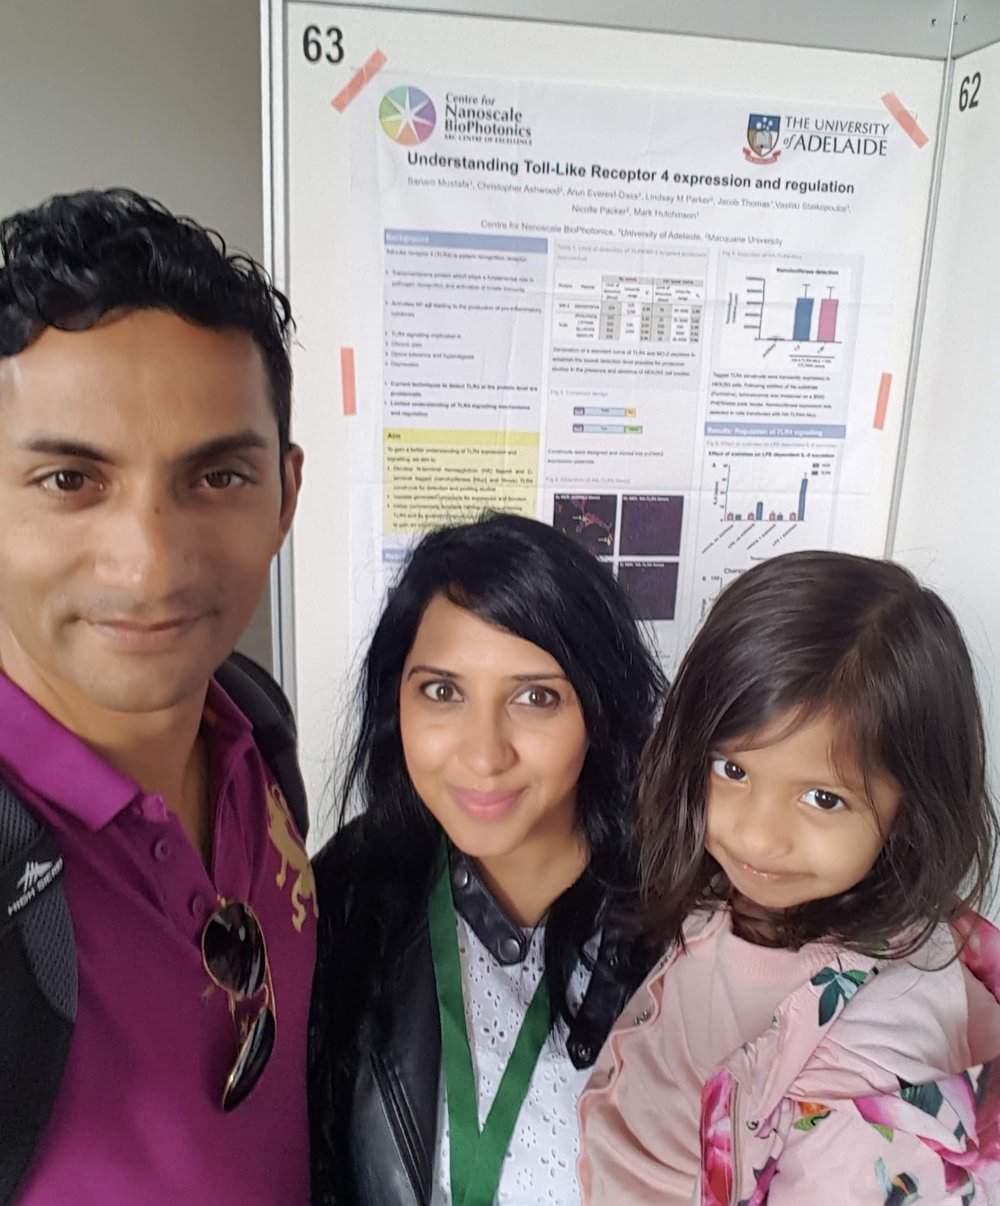 Due to dependent travel awards, I was able to take my daughter and my husband as her carer to to Portugal. This allowed me to attend an important conference in 2018.